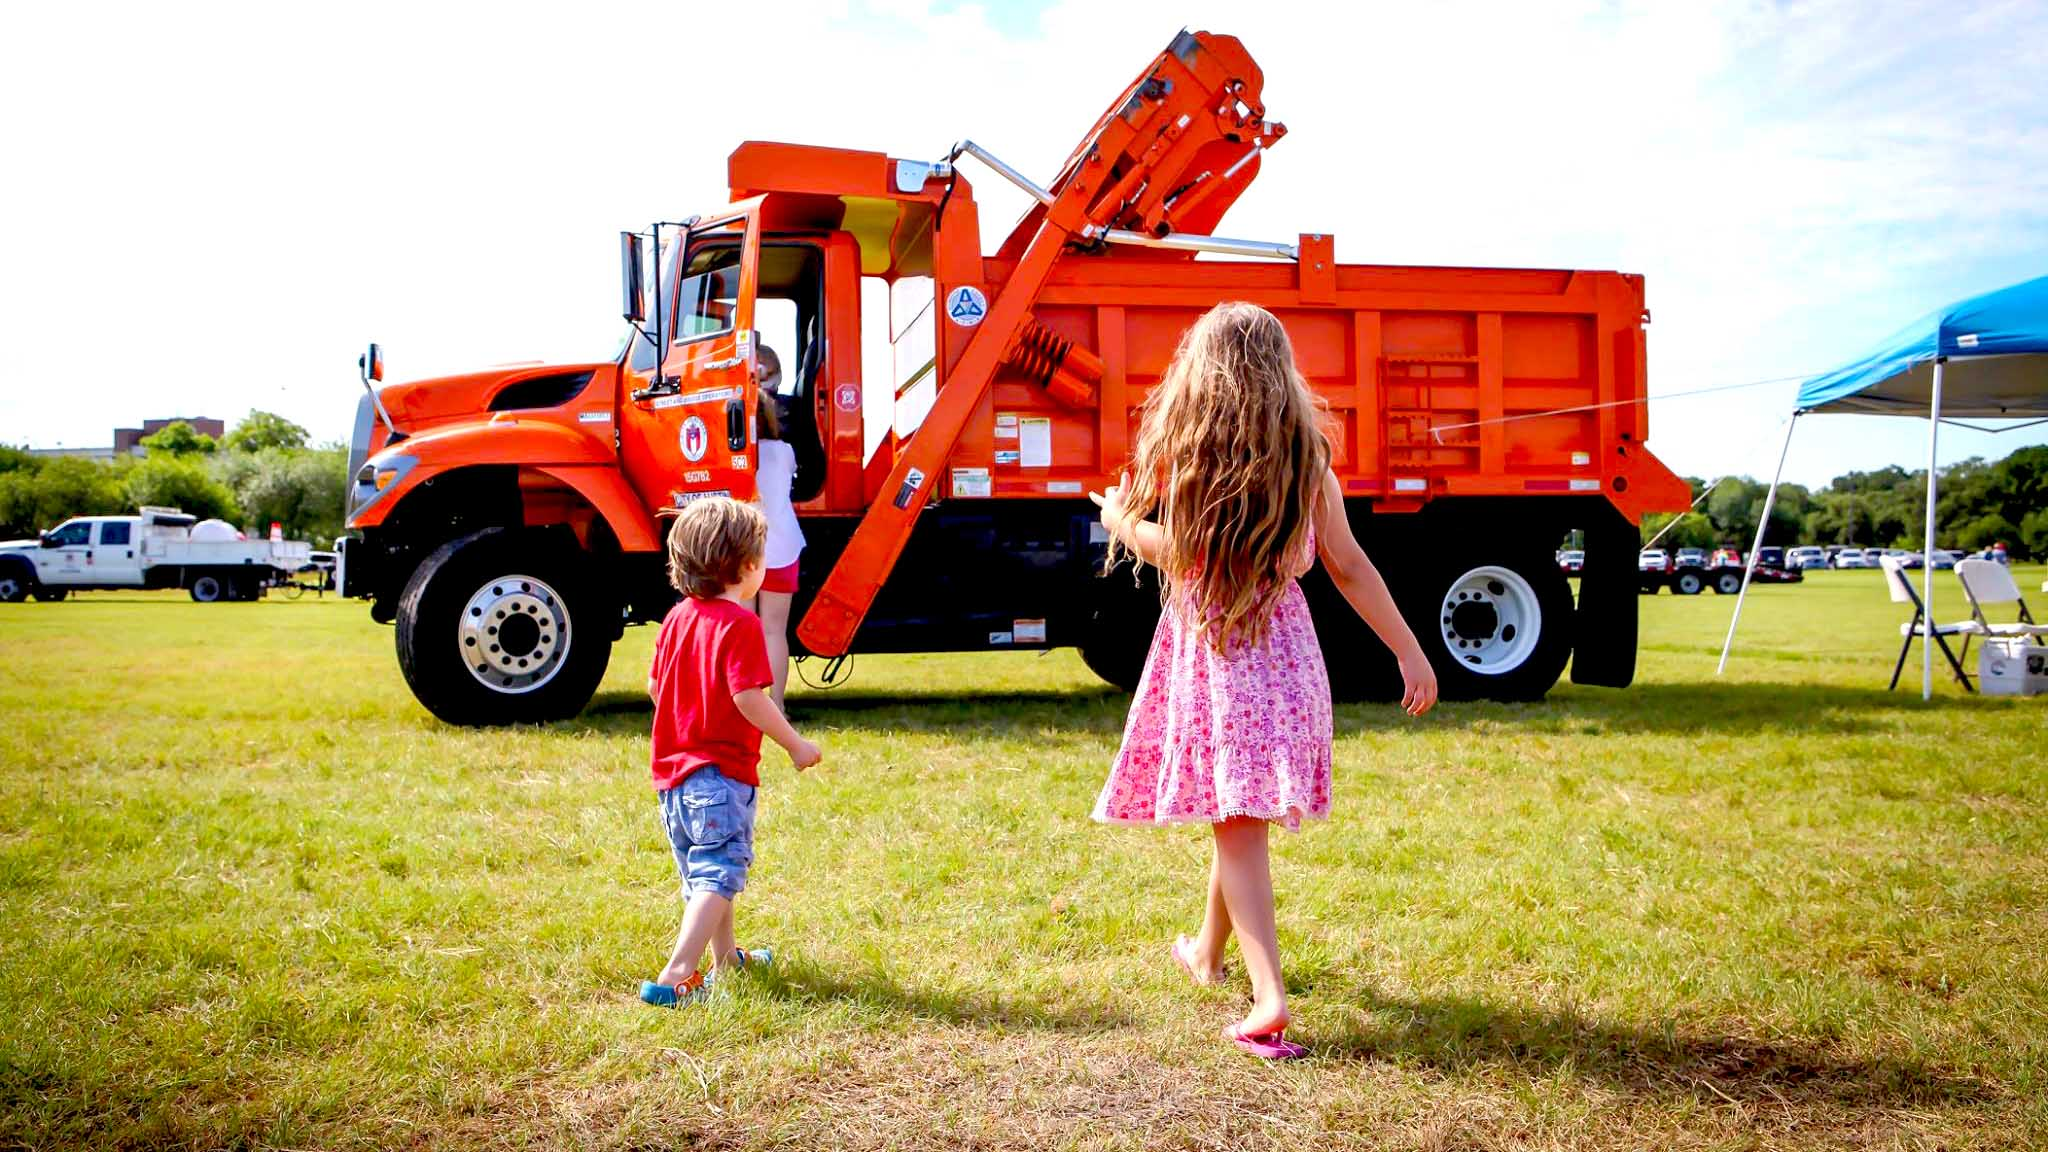 RESCHEDULED: Touch-a-Truck-2019 | Austin Event and Activity for Kids This Fall